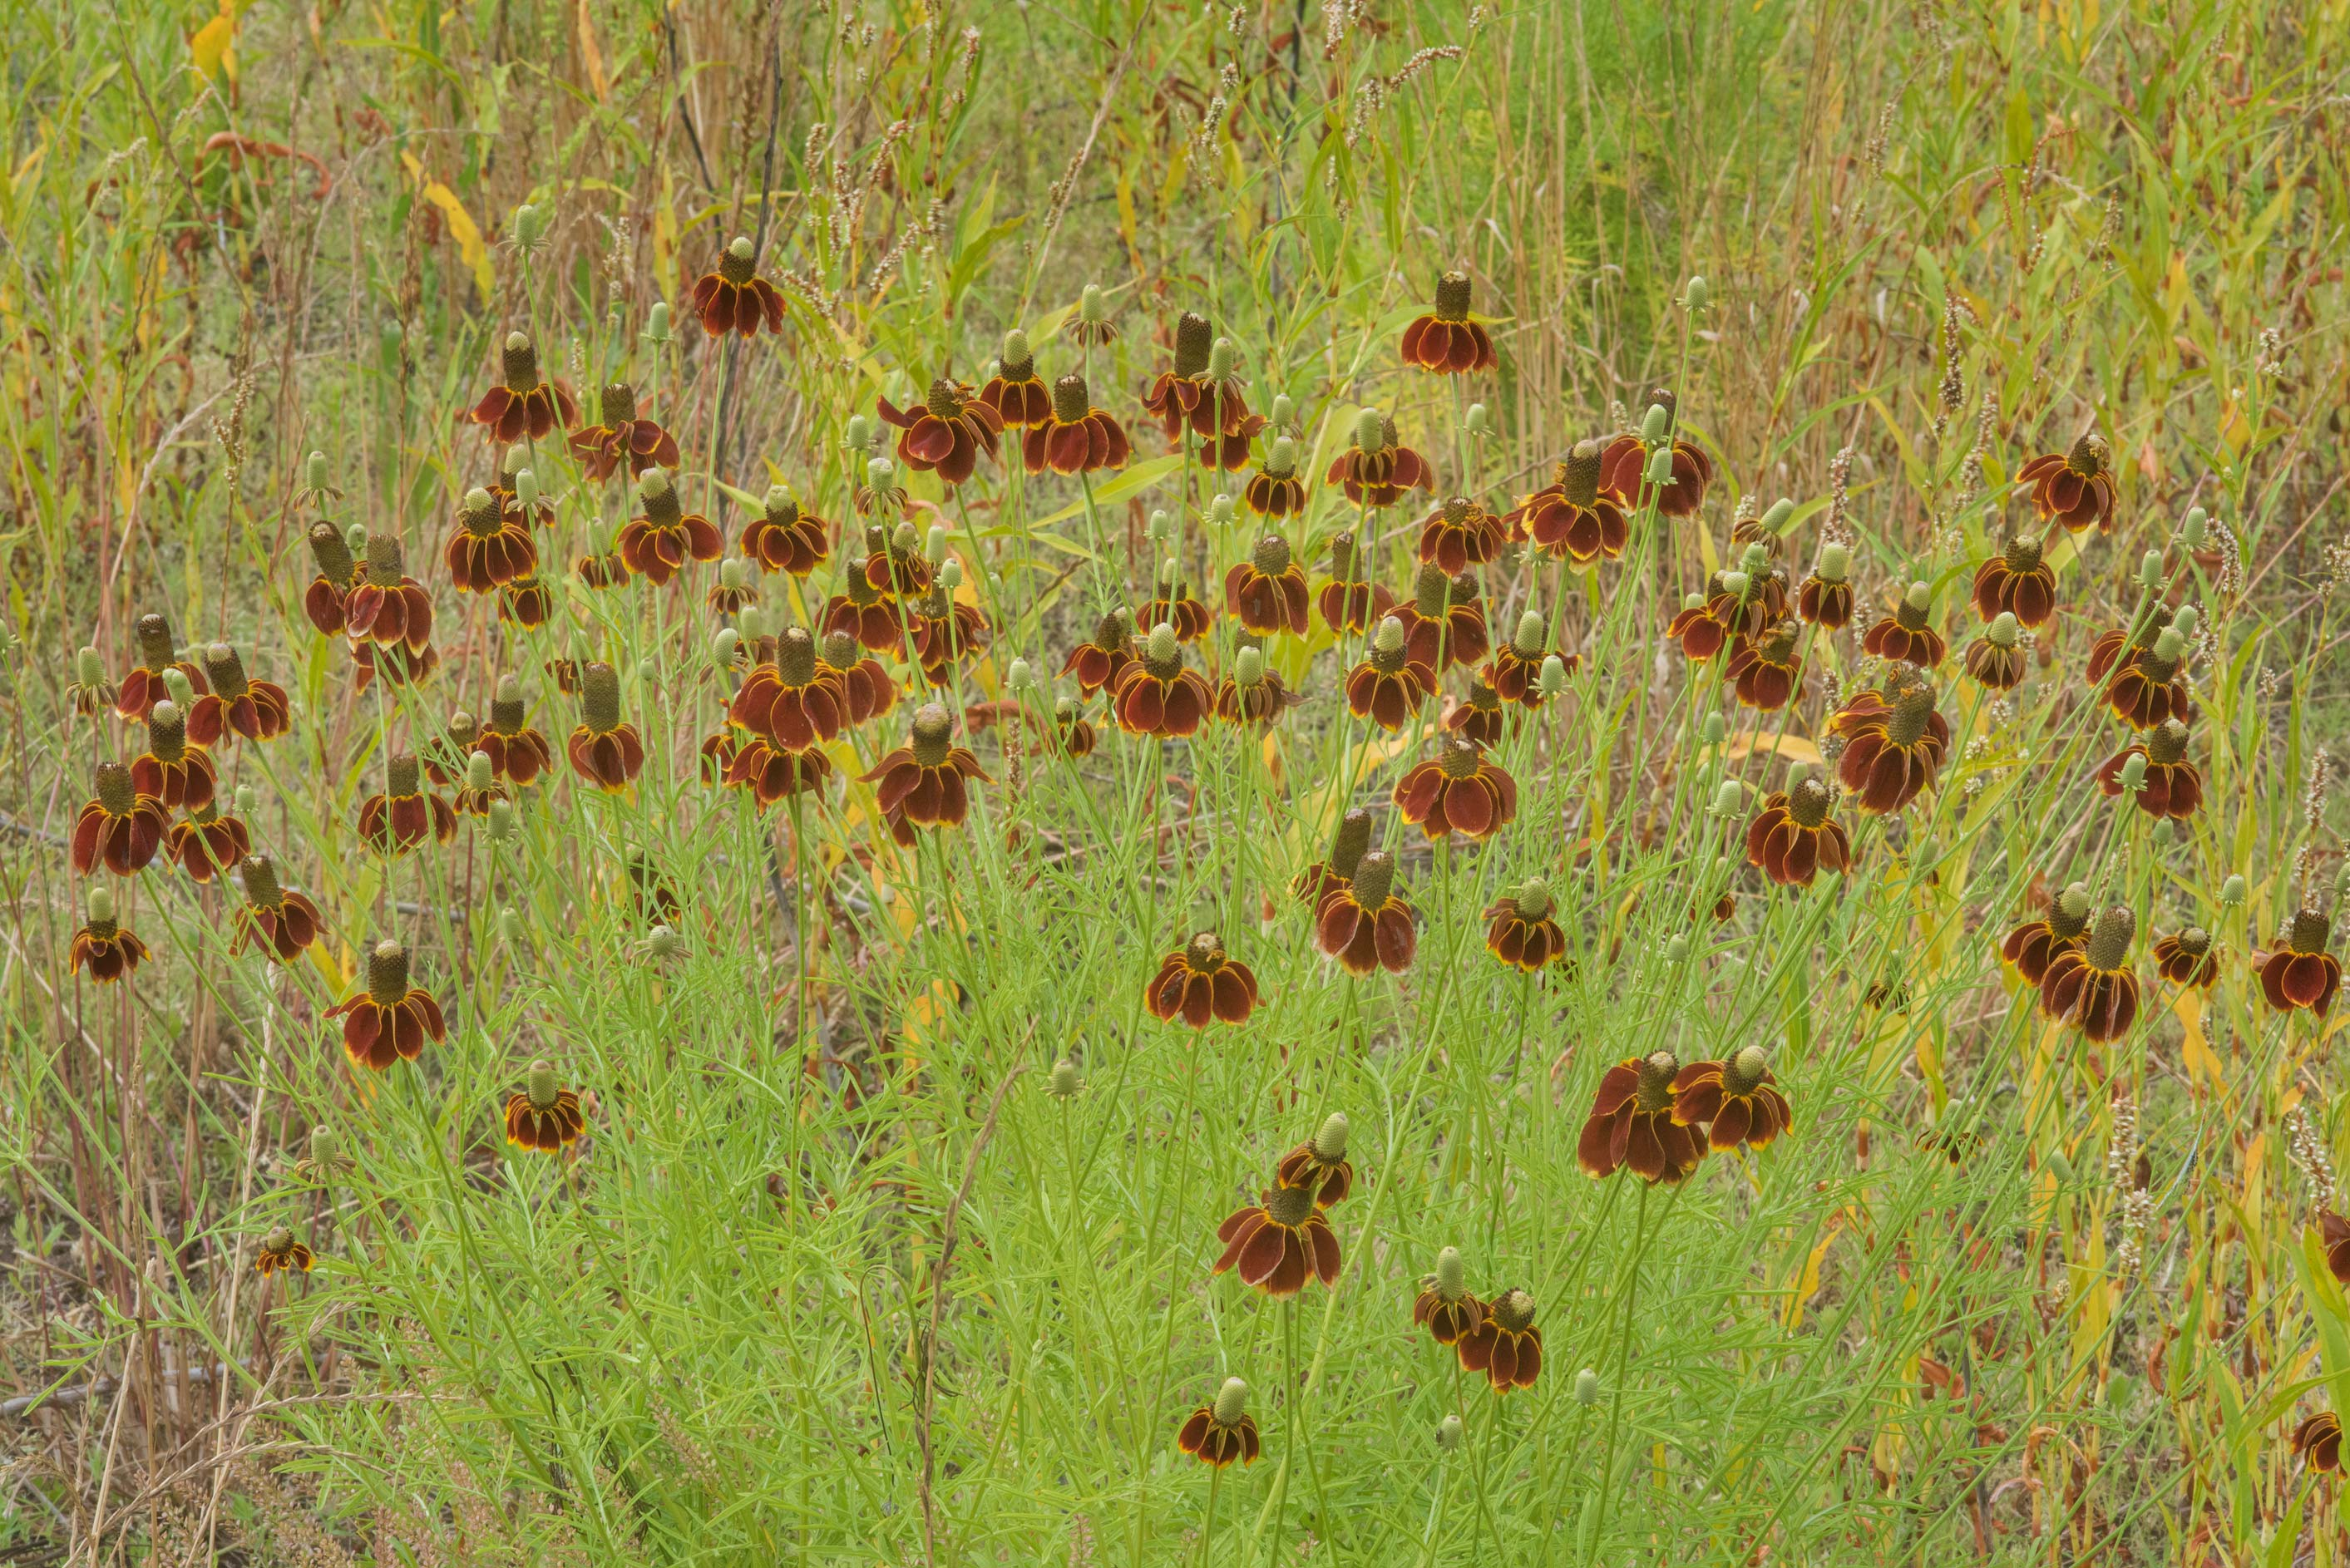 Dark colored Mexican hat flowers (Ratibida...State Historic Site. Washington, Texas